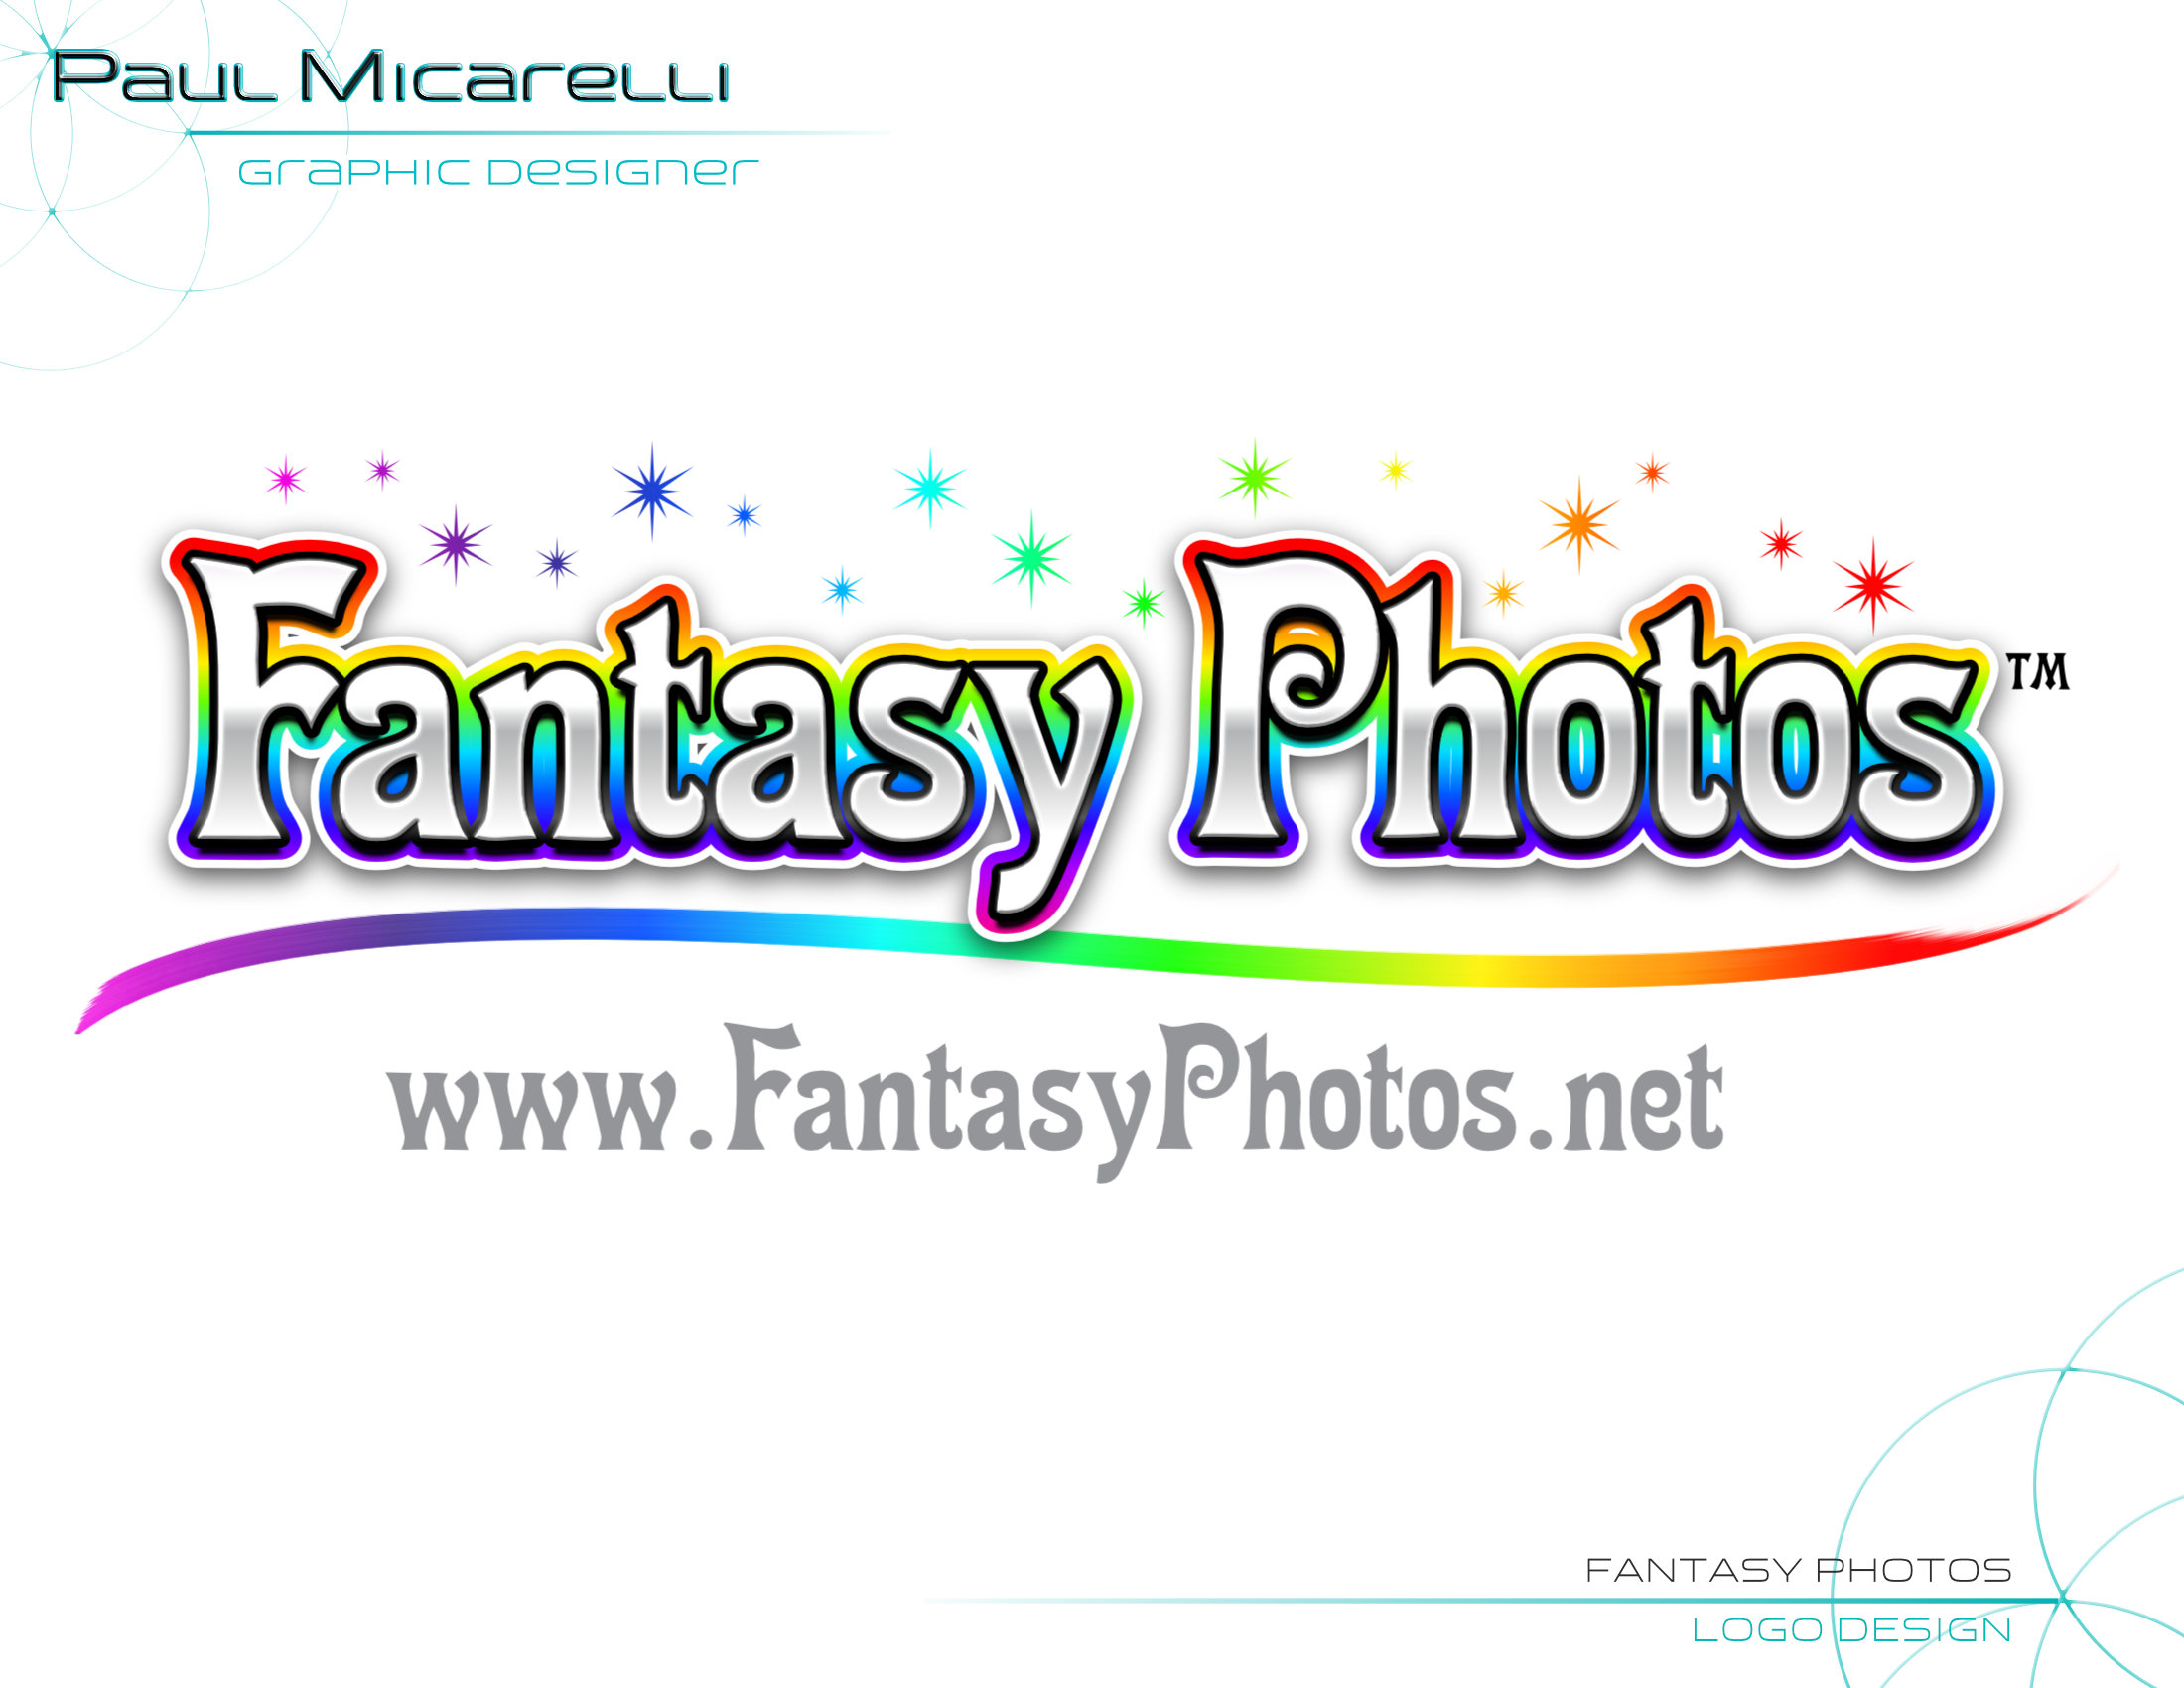 Paul-Micarelli-Fantasy Photos Logo